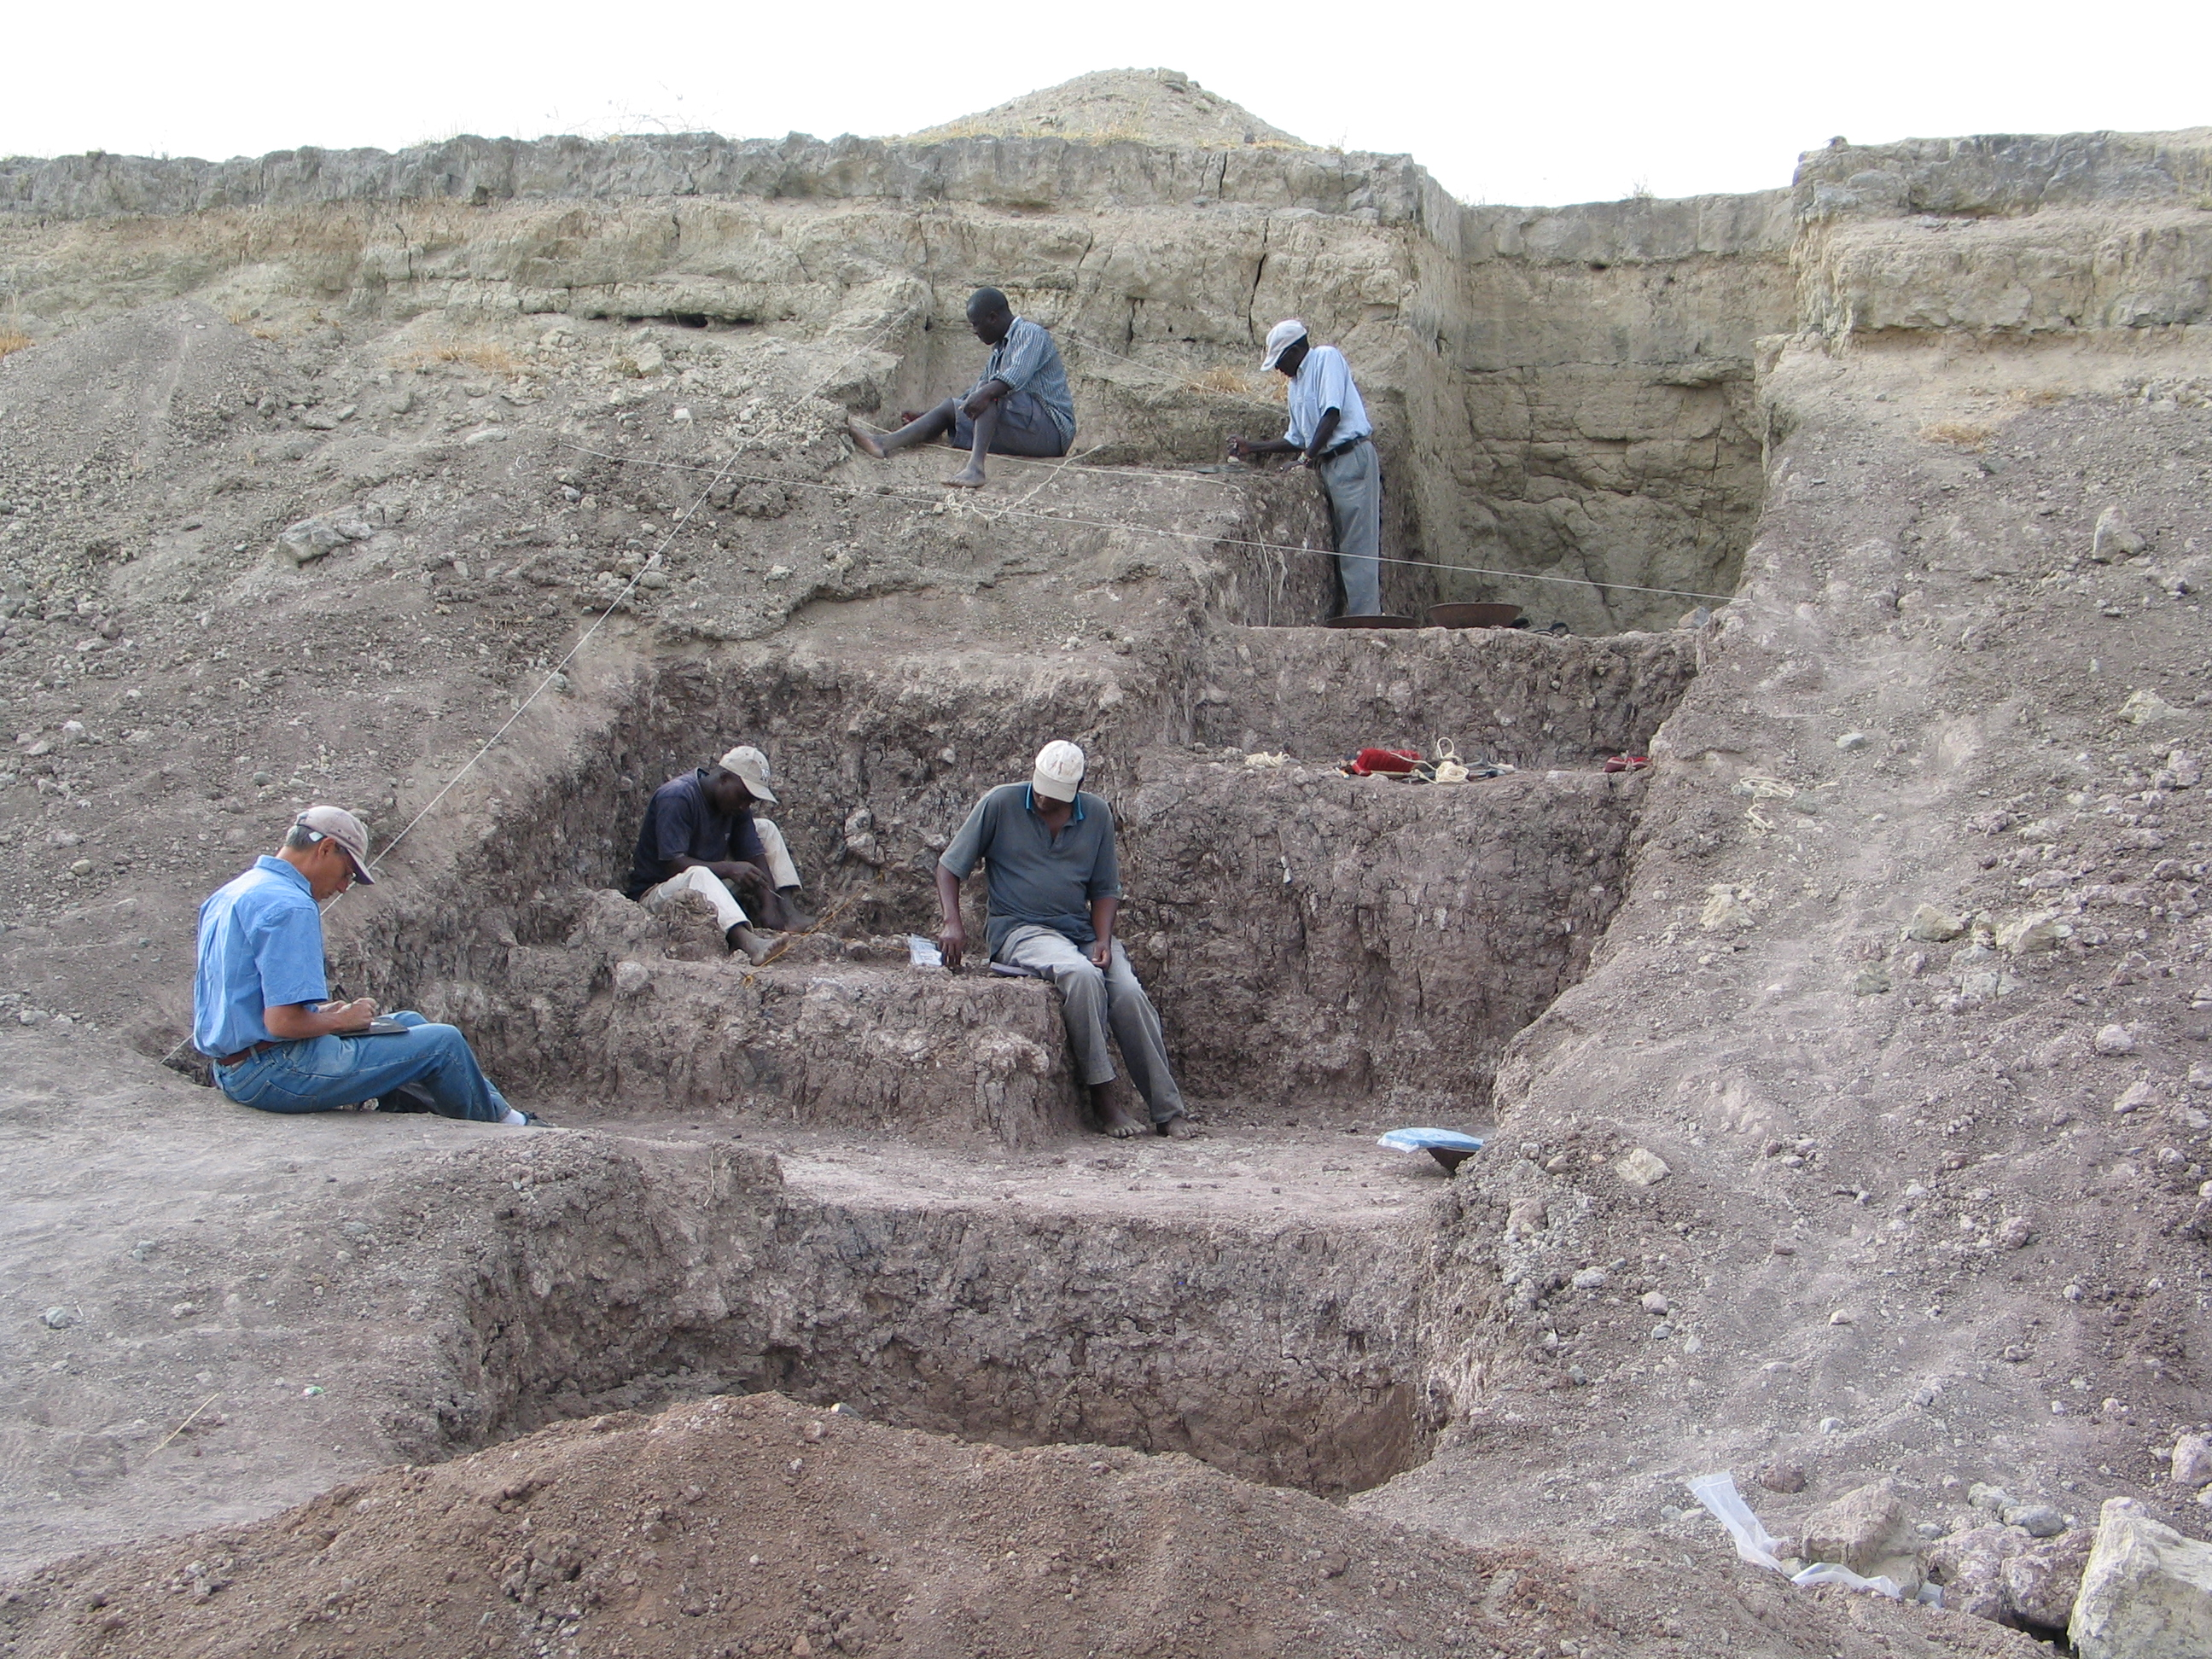 In this Olorgesailie Basin excavation site, red ocher pigments were found with Middle Stone Age artifacts. The light brown and gray layers provide evidence of ancient soils and of landscapes affected by earthquakes and other seismic activity, factors that rapidly altered the environment and resources on which human ancestors depended for survival. (Human Origins Program, Smithsonian)